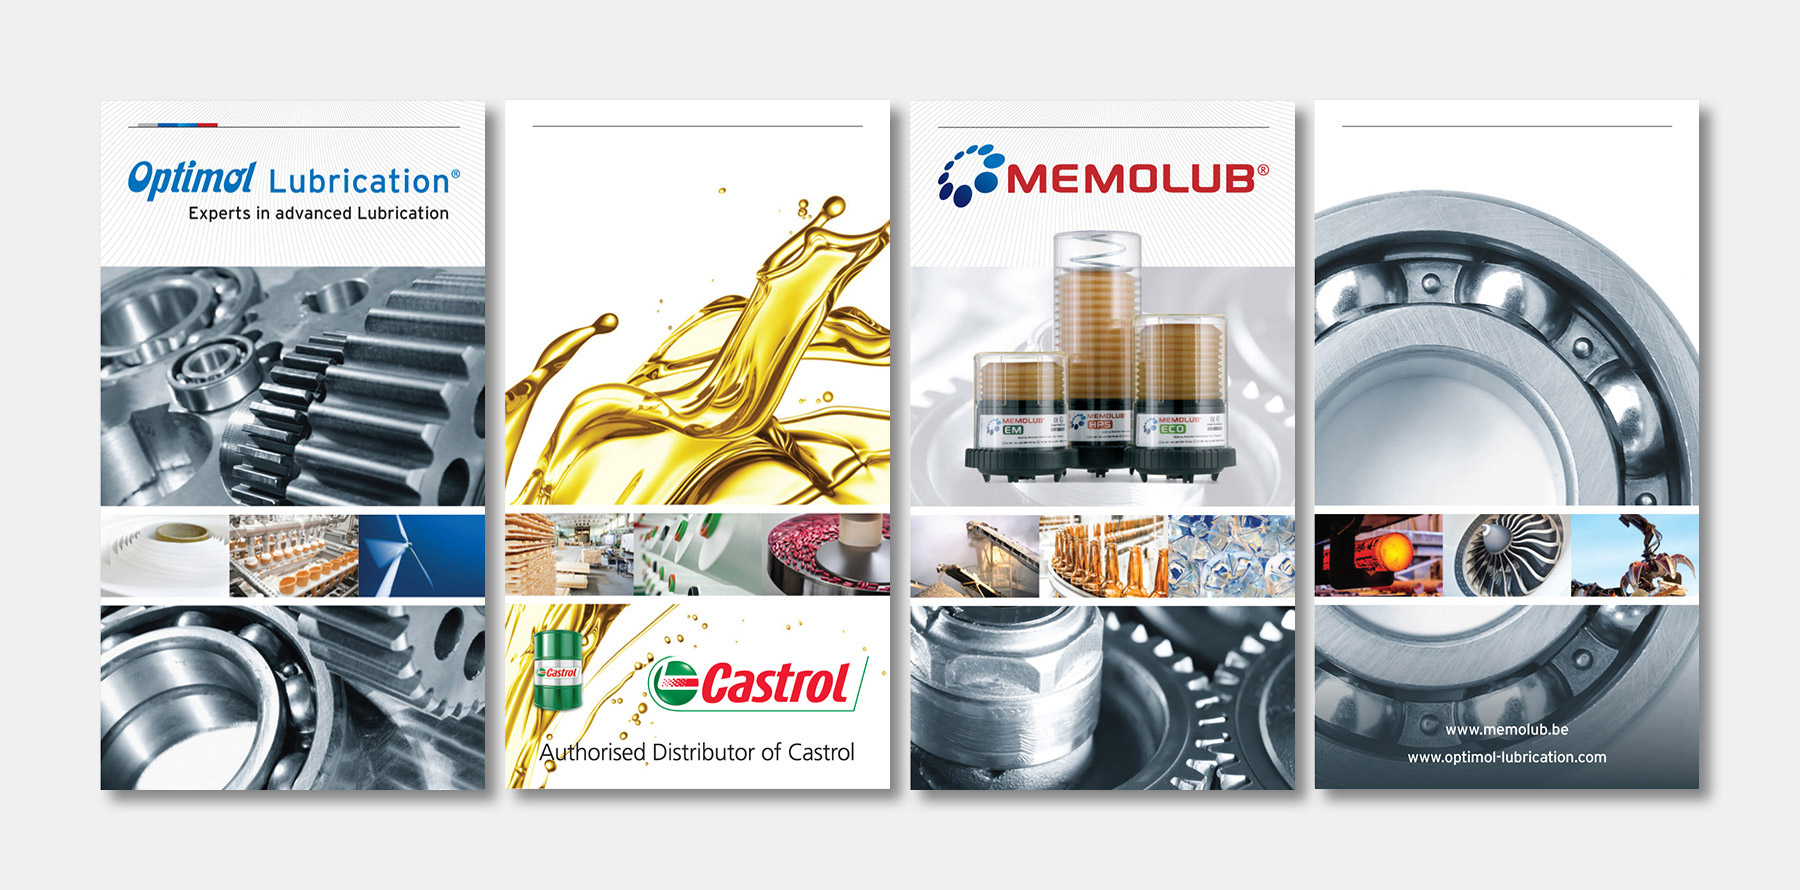 Case Study: Optimol Lubrication 03